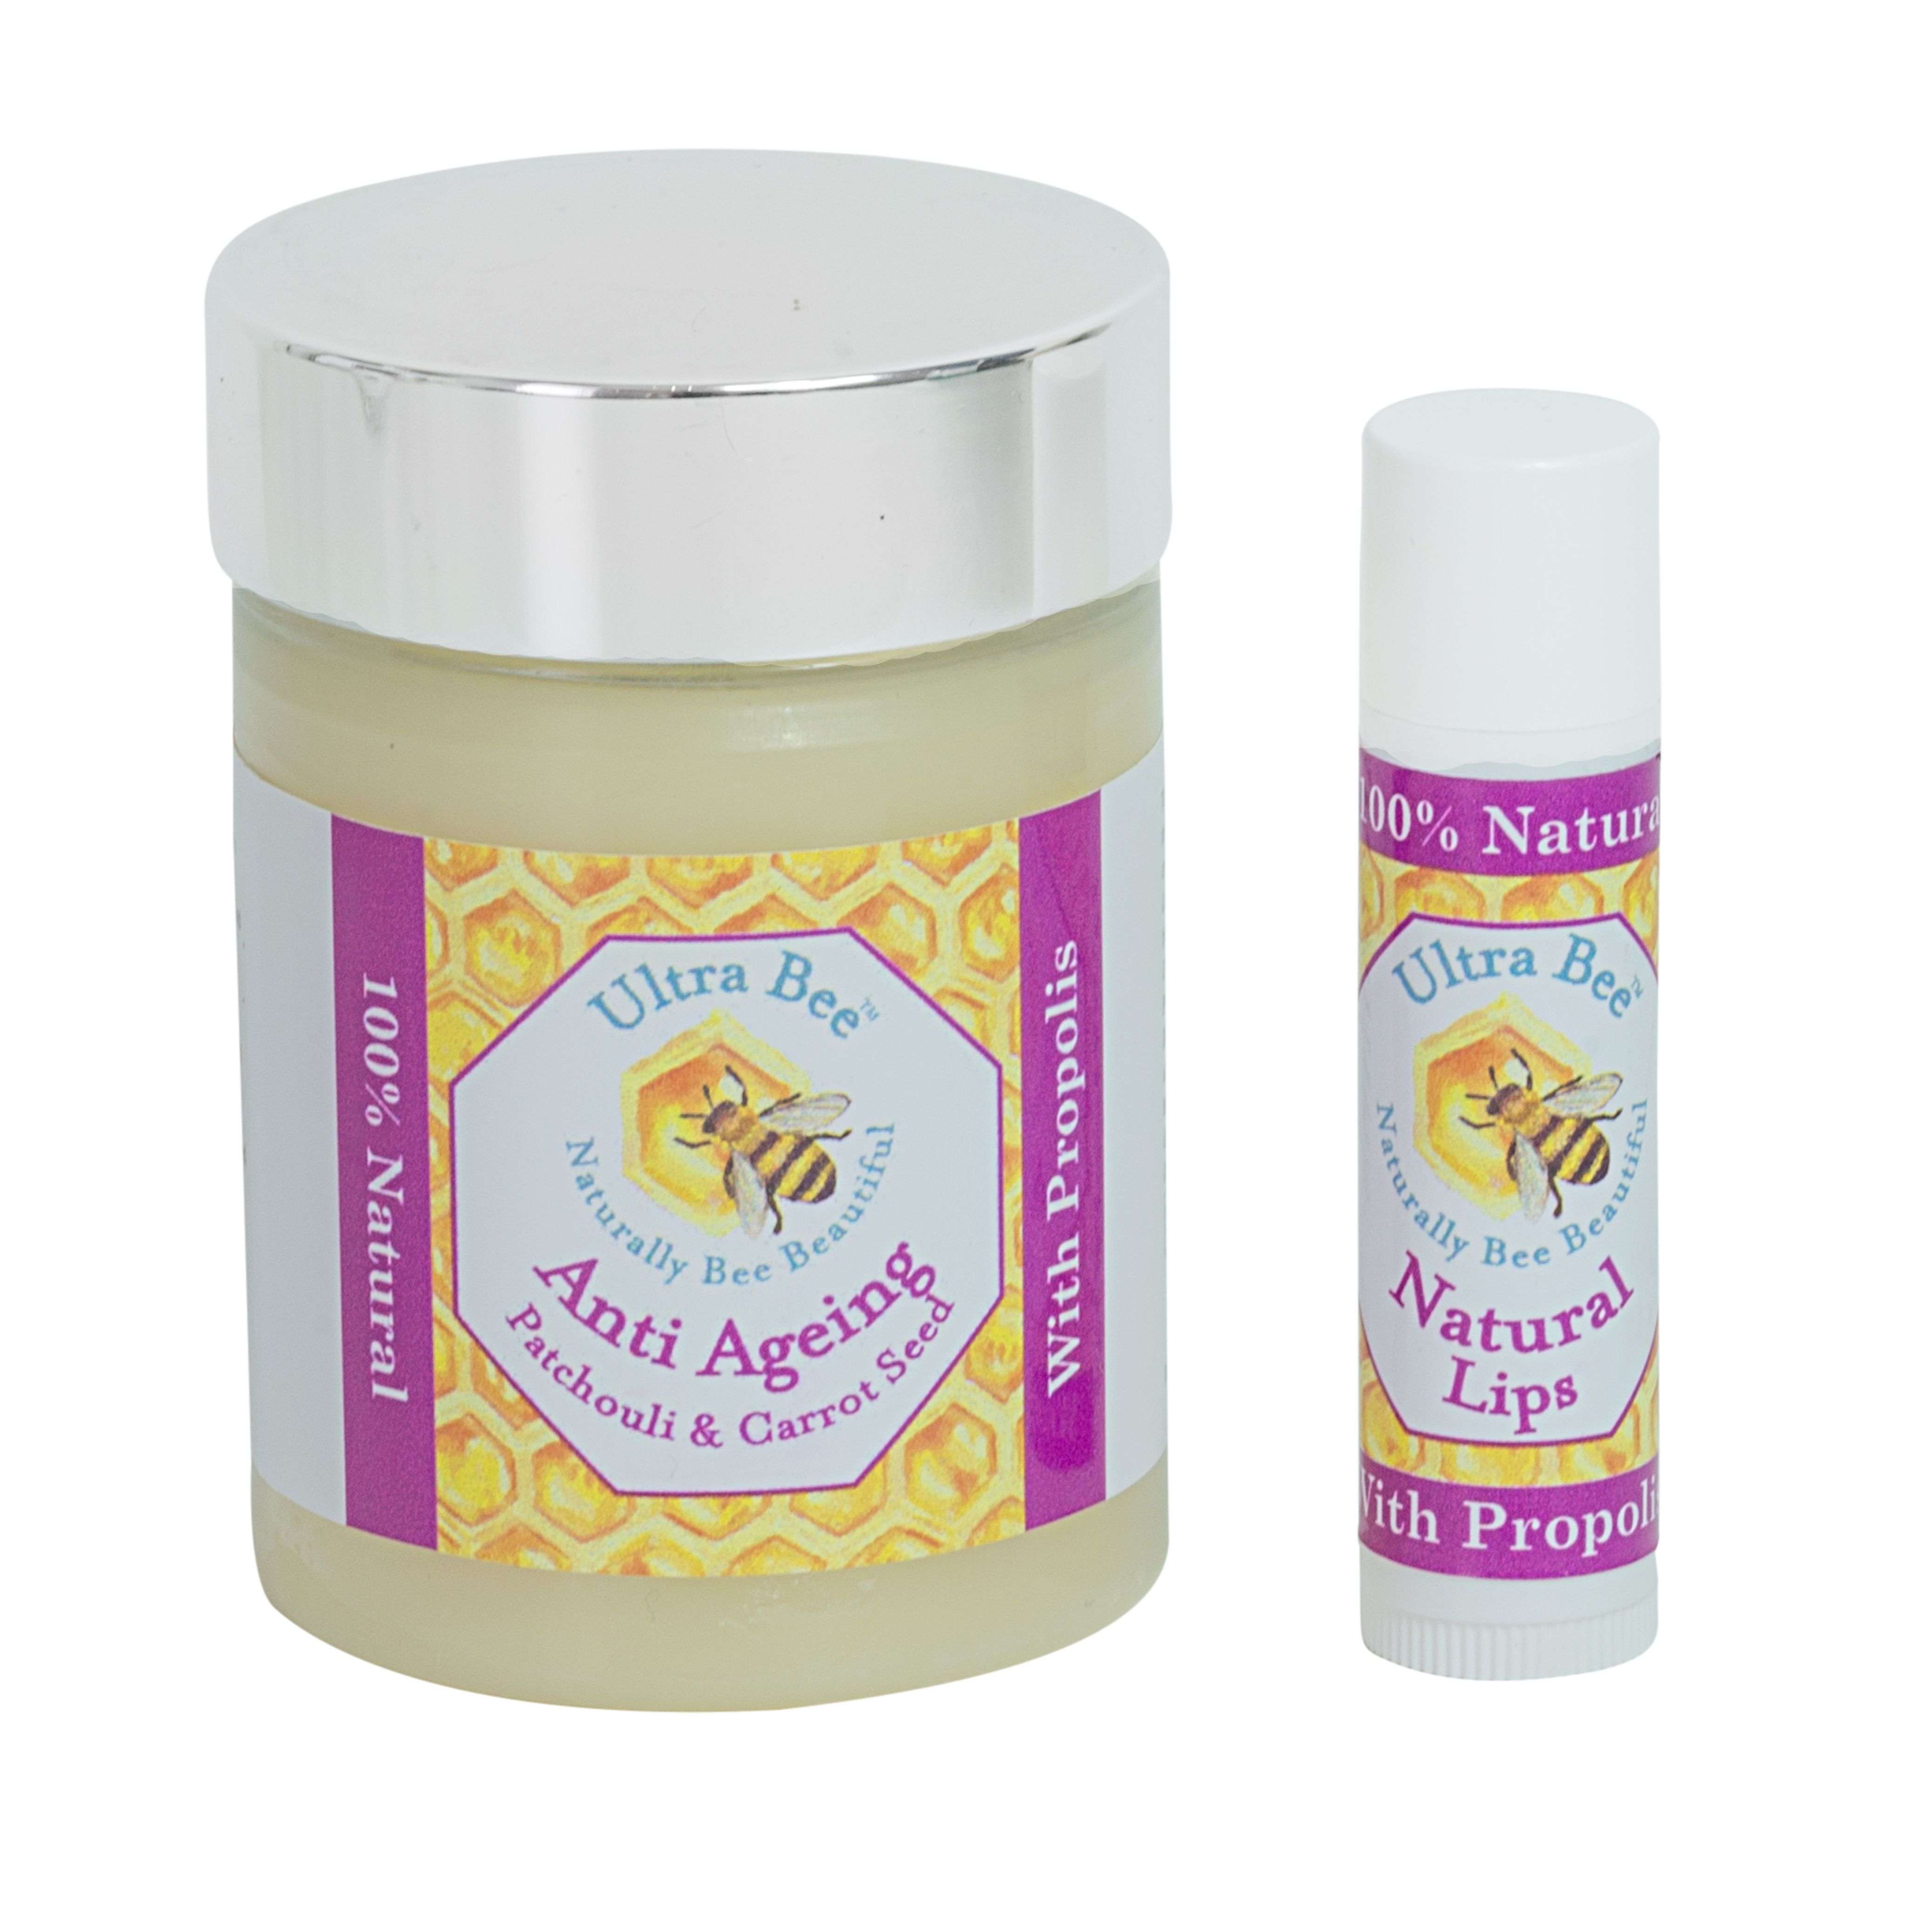 100% Natural Face Moisturiser Ultra Bee's Uniquely Formulated